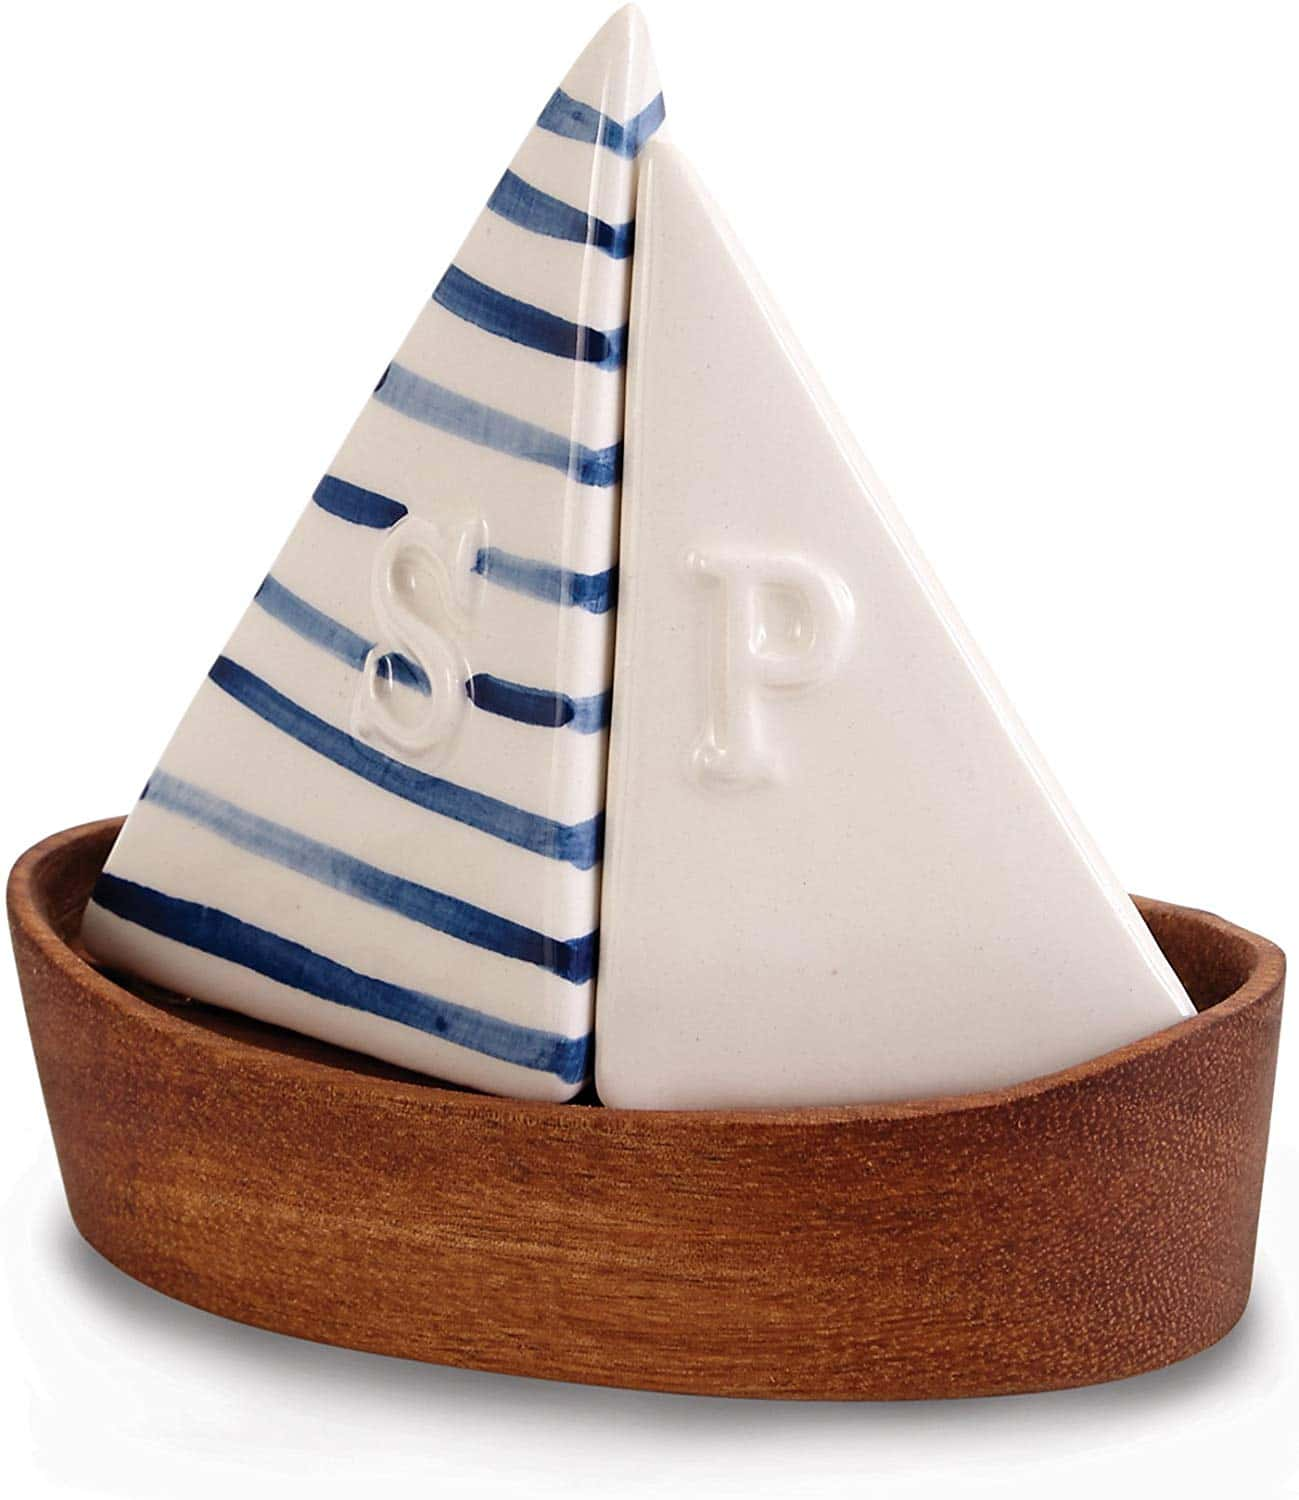 nautical-gifts-sailboat